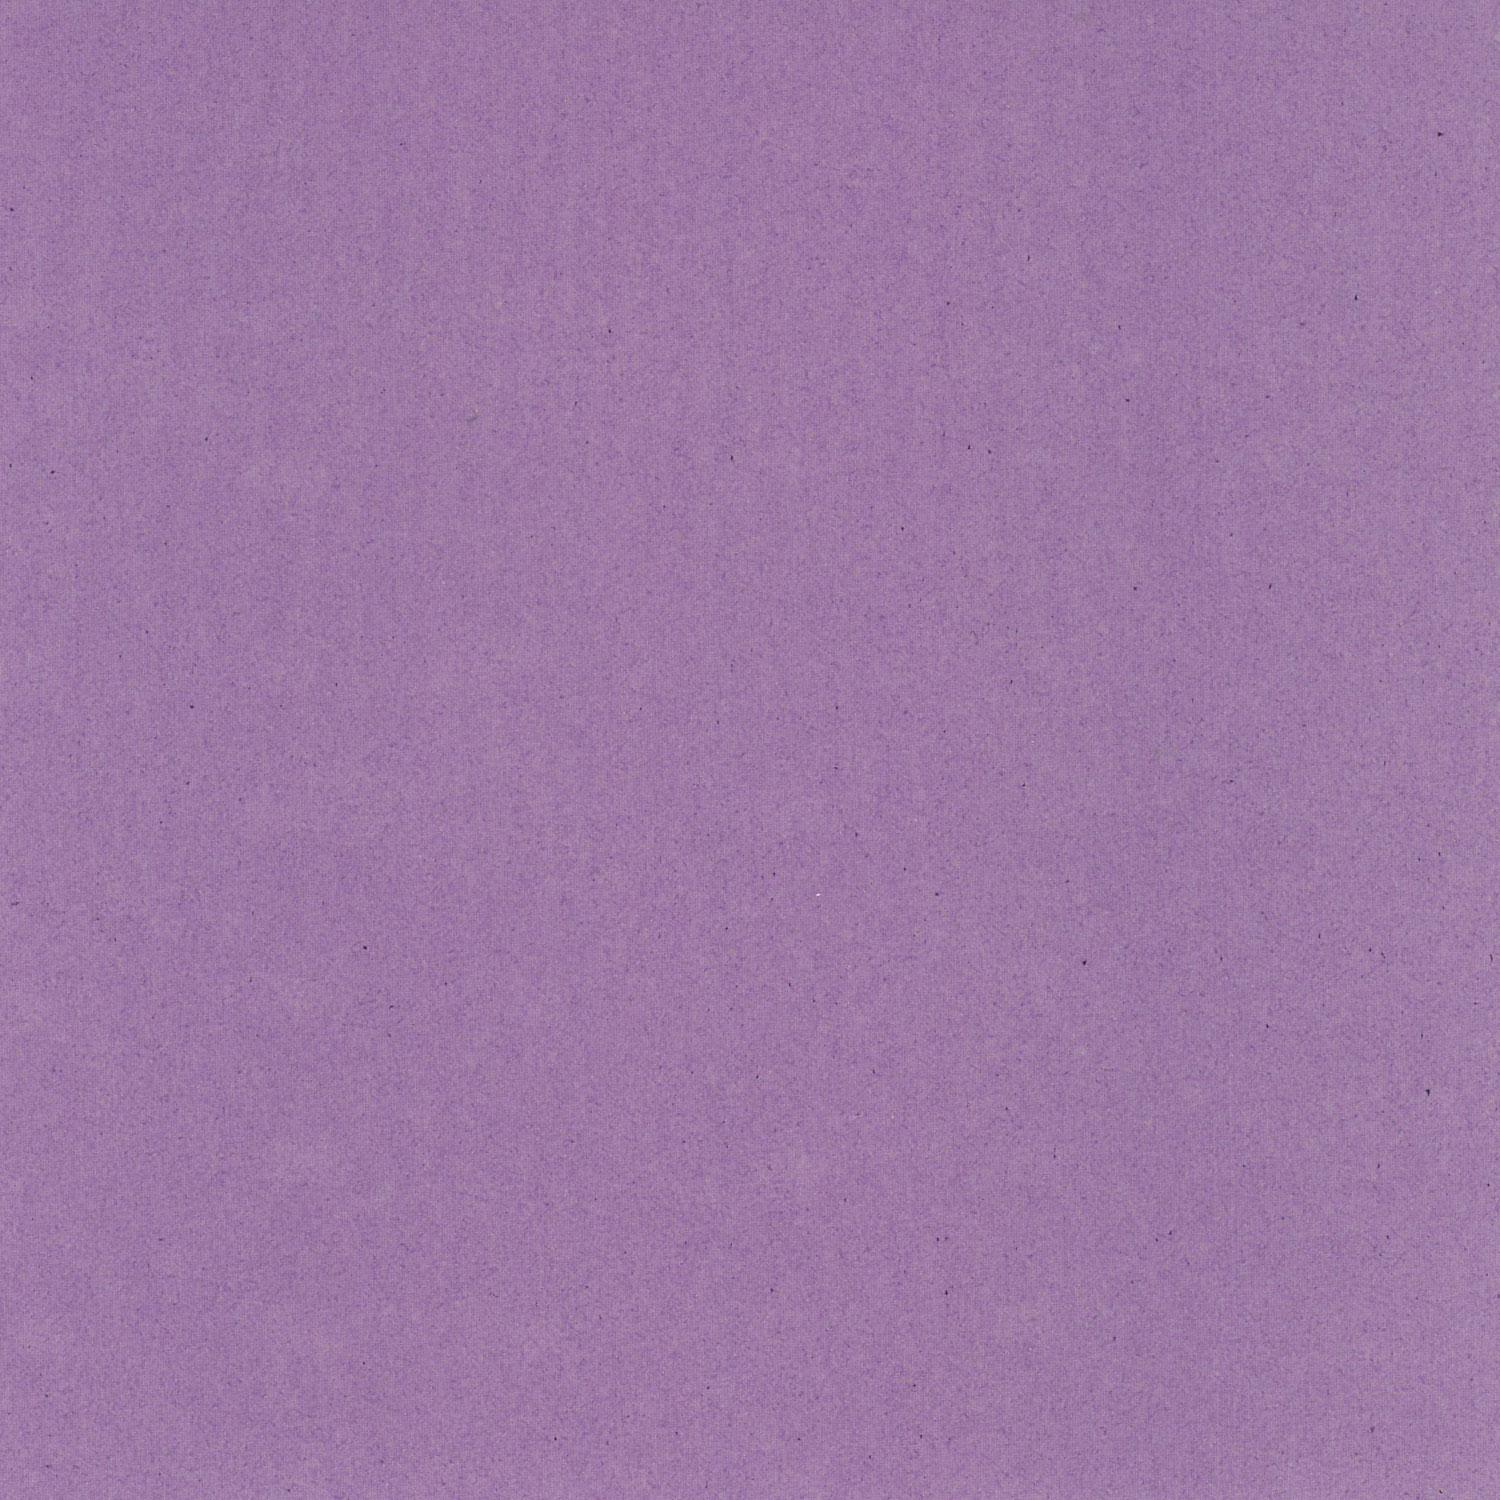 4-1/2 Lilac Satin Shimmers Dichroic Coated Mica Decal